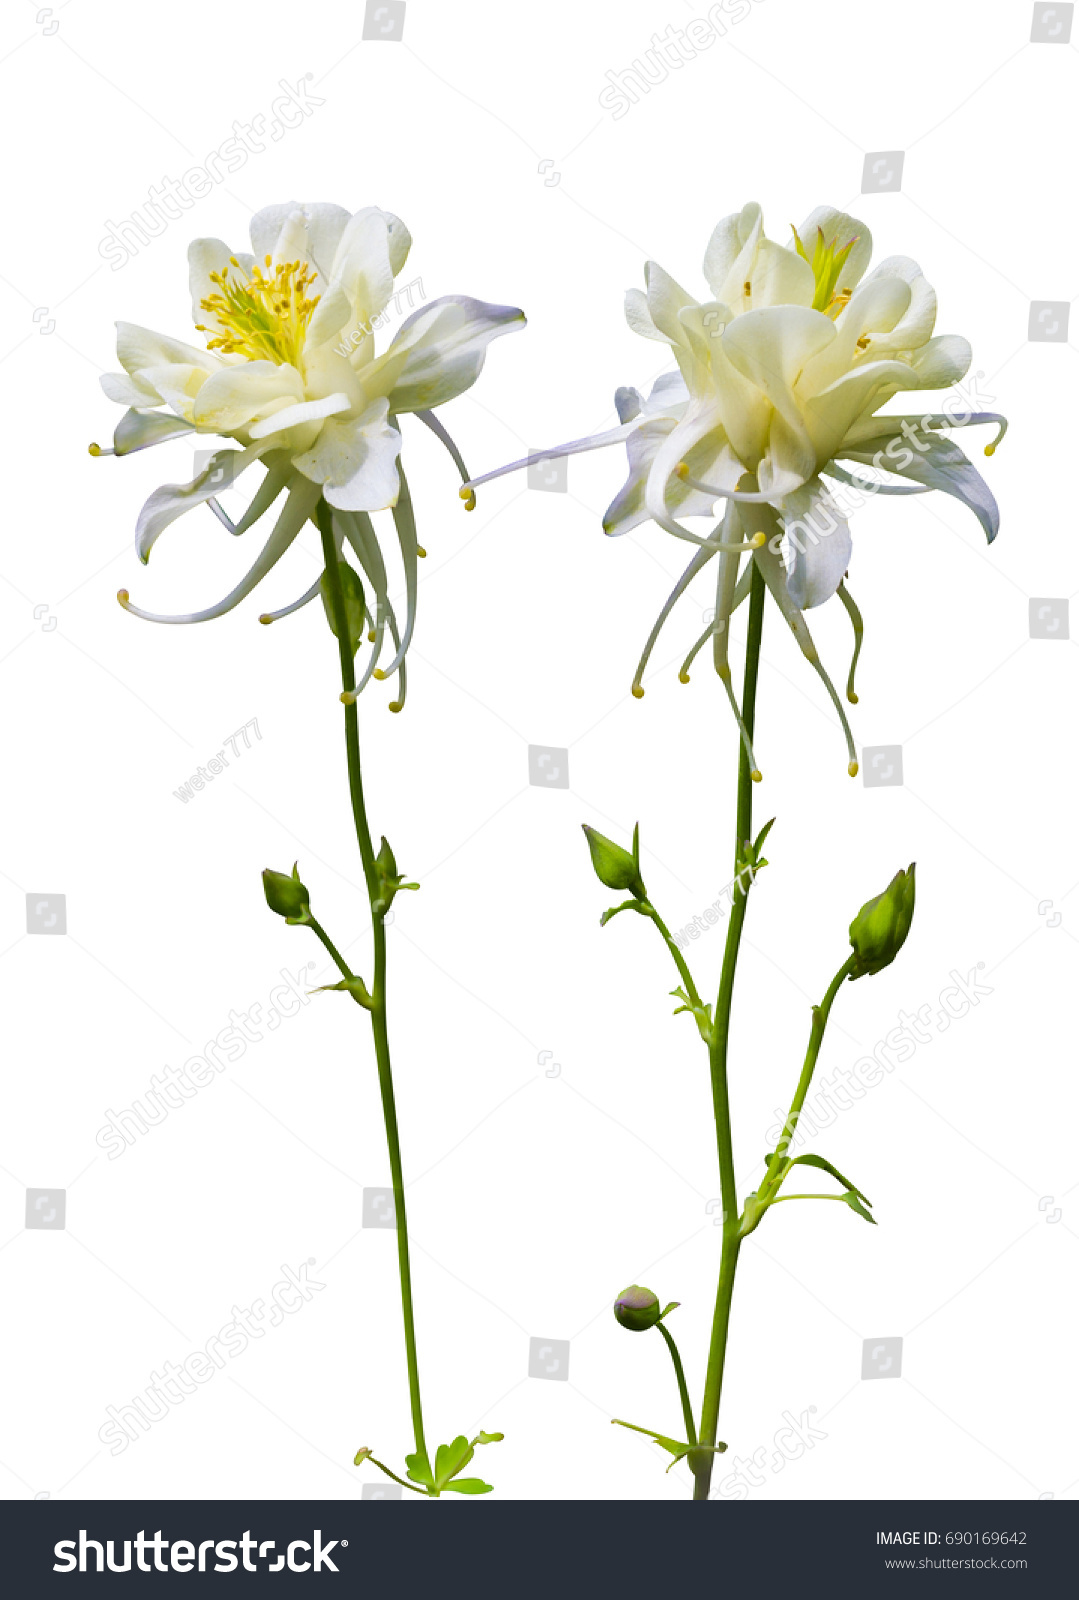 White flowers columbine flower isolated on stock photo edit now white flowers columbine flower isolated on a white background izmirmasajfo